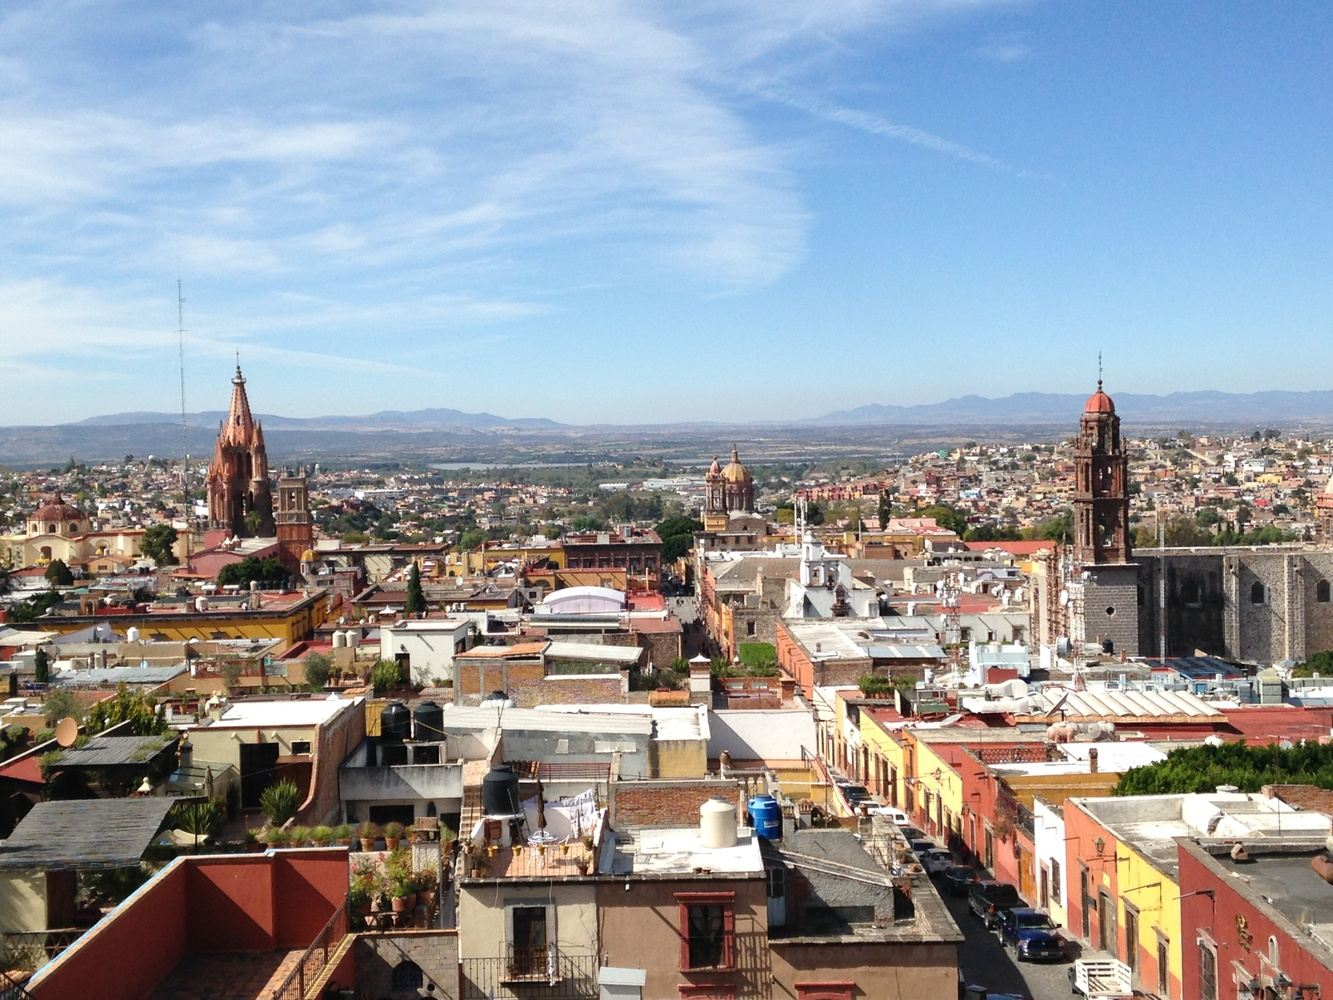 Mindful Excursions: The Soul of Mexico for Body, Mind & Spirit